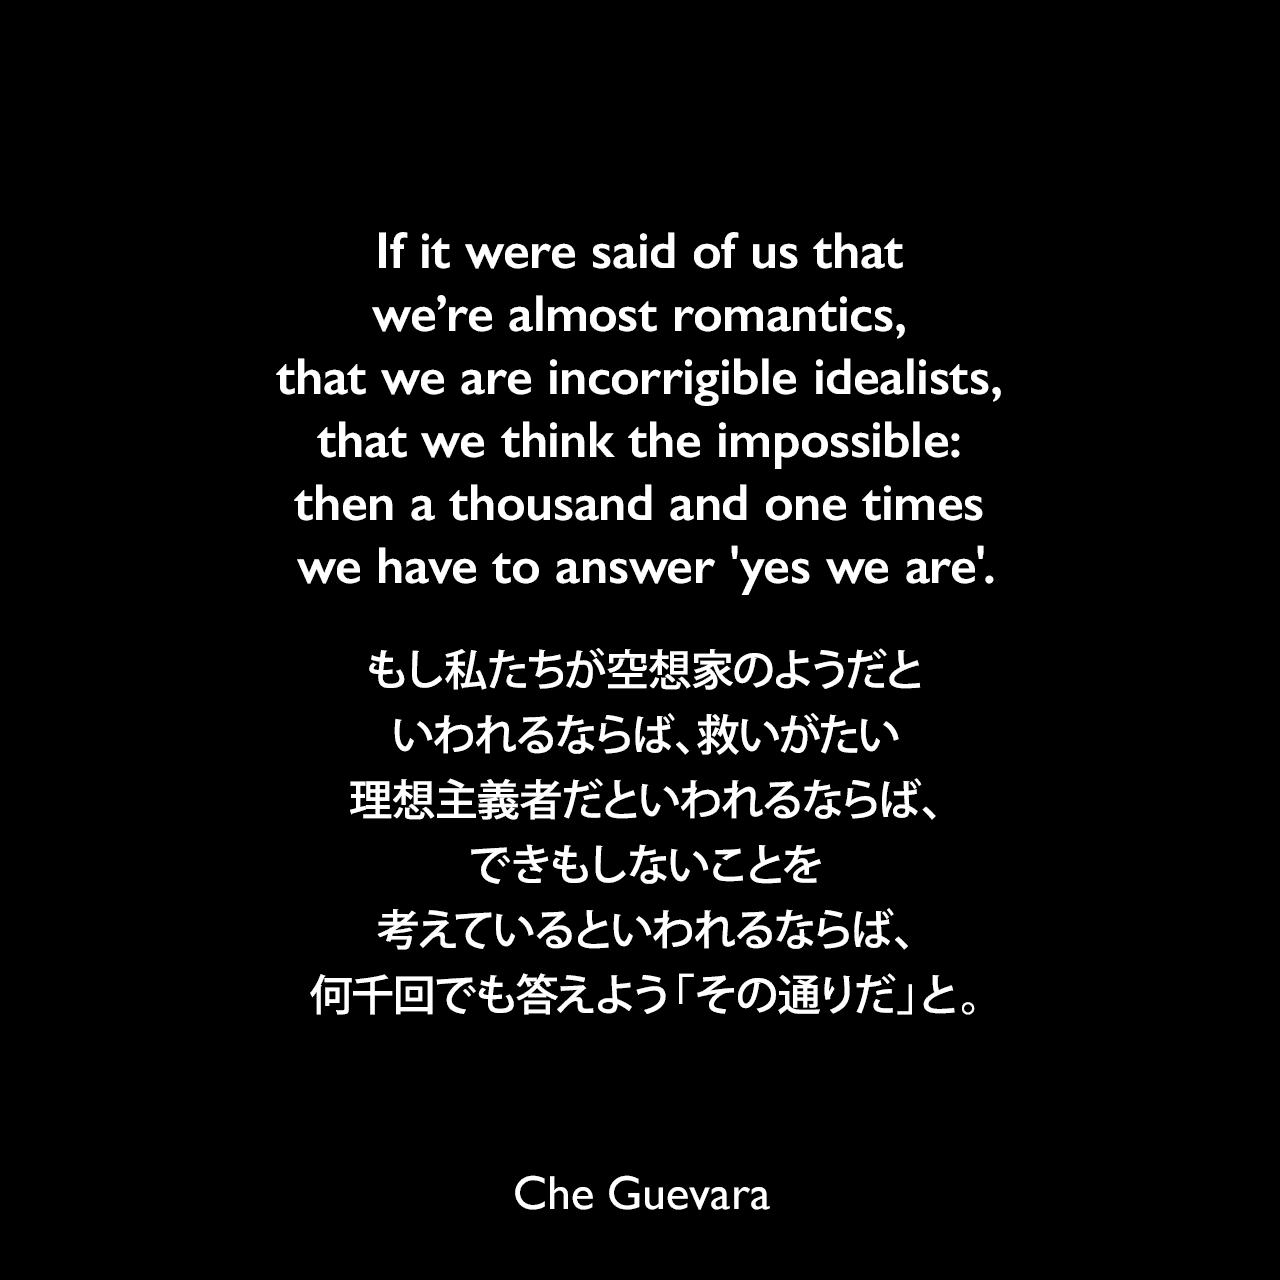 If it were said of us that we're almost romantics, that we are incorrigible idealists, that we think the impossible: then a thousand and one times we have to answer 'yes we are'.もし私たちが空想家のようだといわれるならば、救いがたい理想主義者だといわれるならば、できもしないことを考えているといわれるならば、何千回でも答えよう「その通りだ」と。Che Guevara